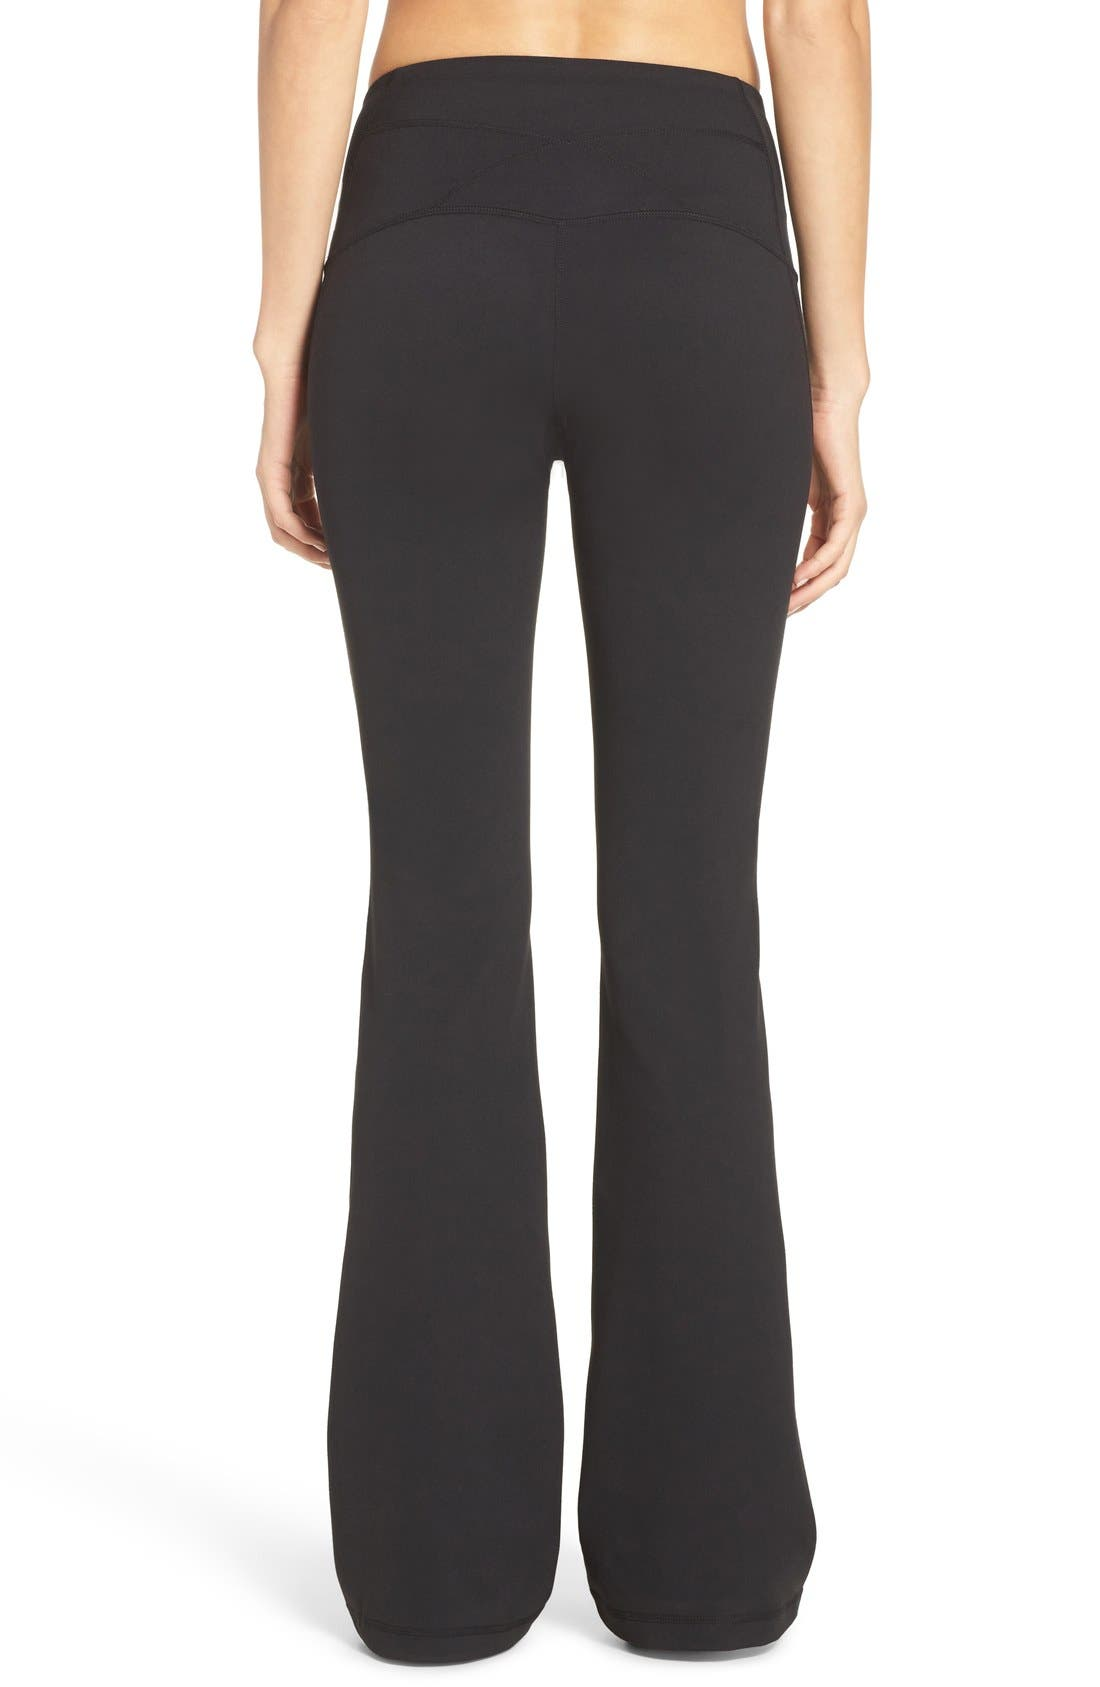 'Barely Flare Booty' High Waist Pants,                             Alternate thumbnail 4, color,